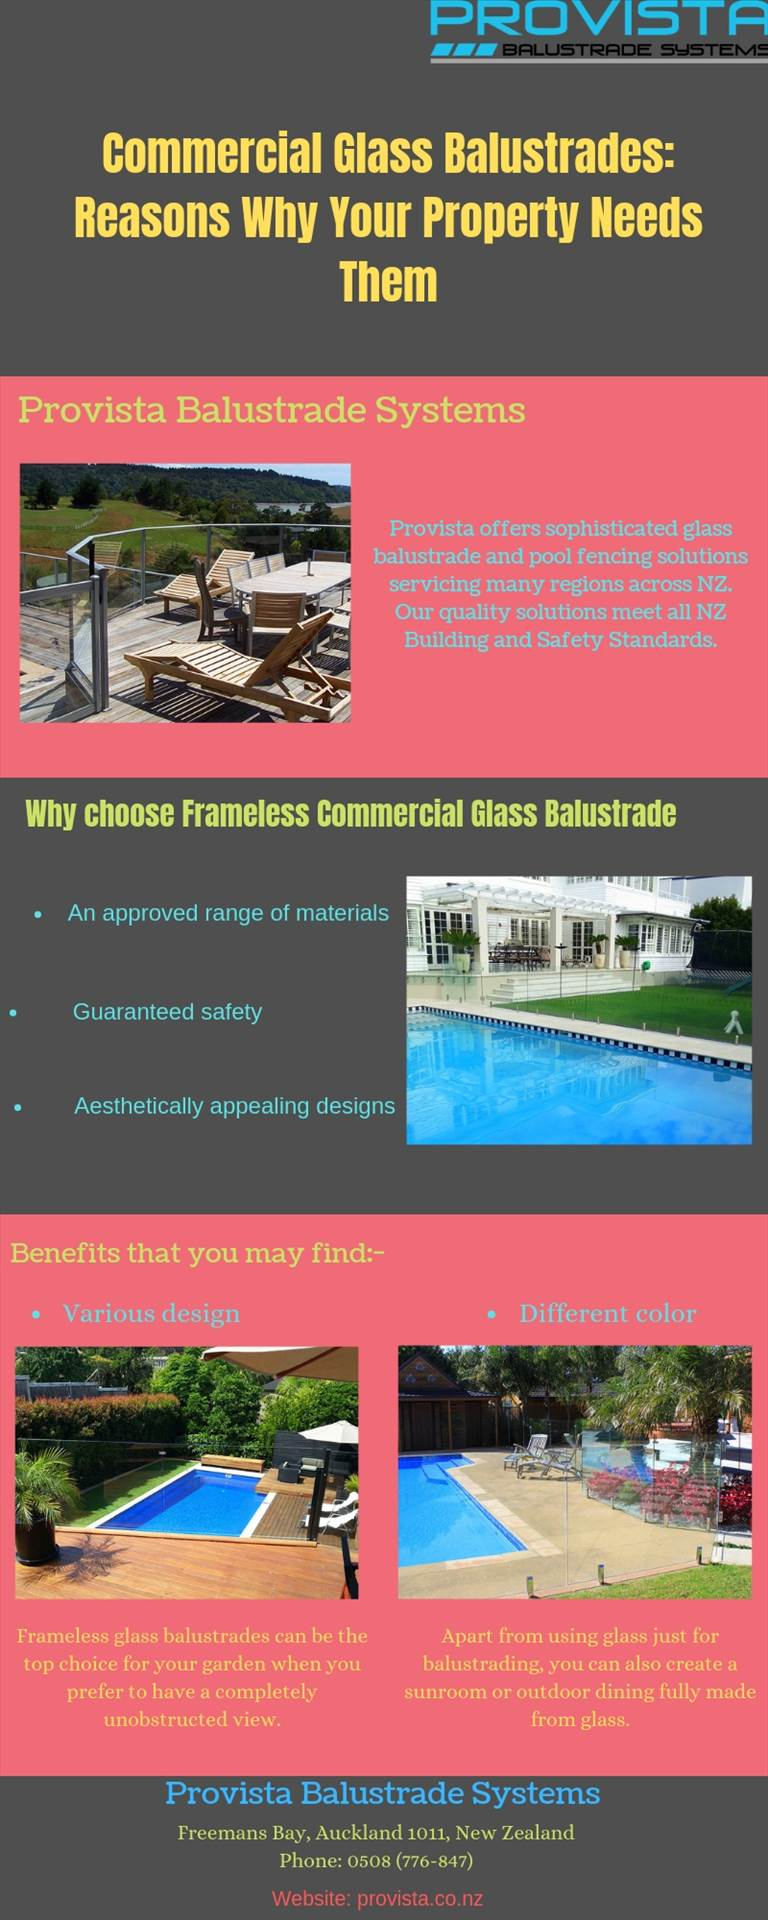 Commercial Glass Balustrades: Reasons Why Your Property Needs Them Glass Balustrades - the most stylish, durable, and robust safety alternative that can turn any commercial or domestic space from mediocre to show-stopping. For more details, visit this link: https://bit.ly/2uEL8gj  by Provista